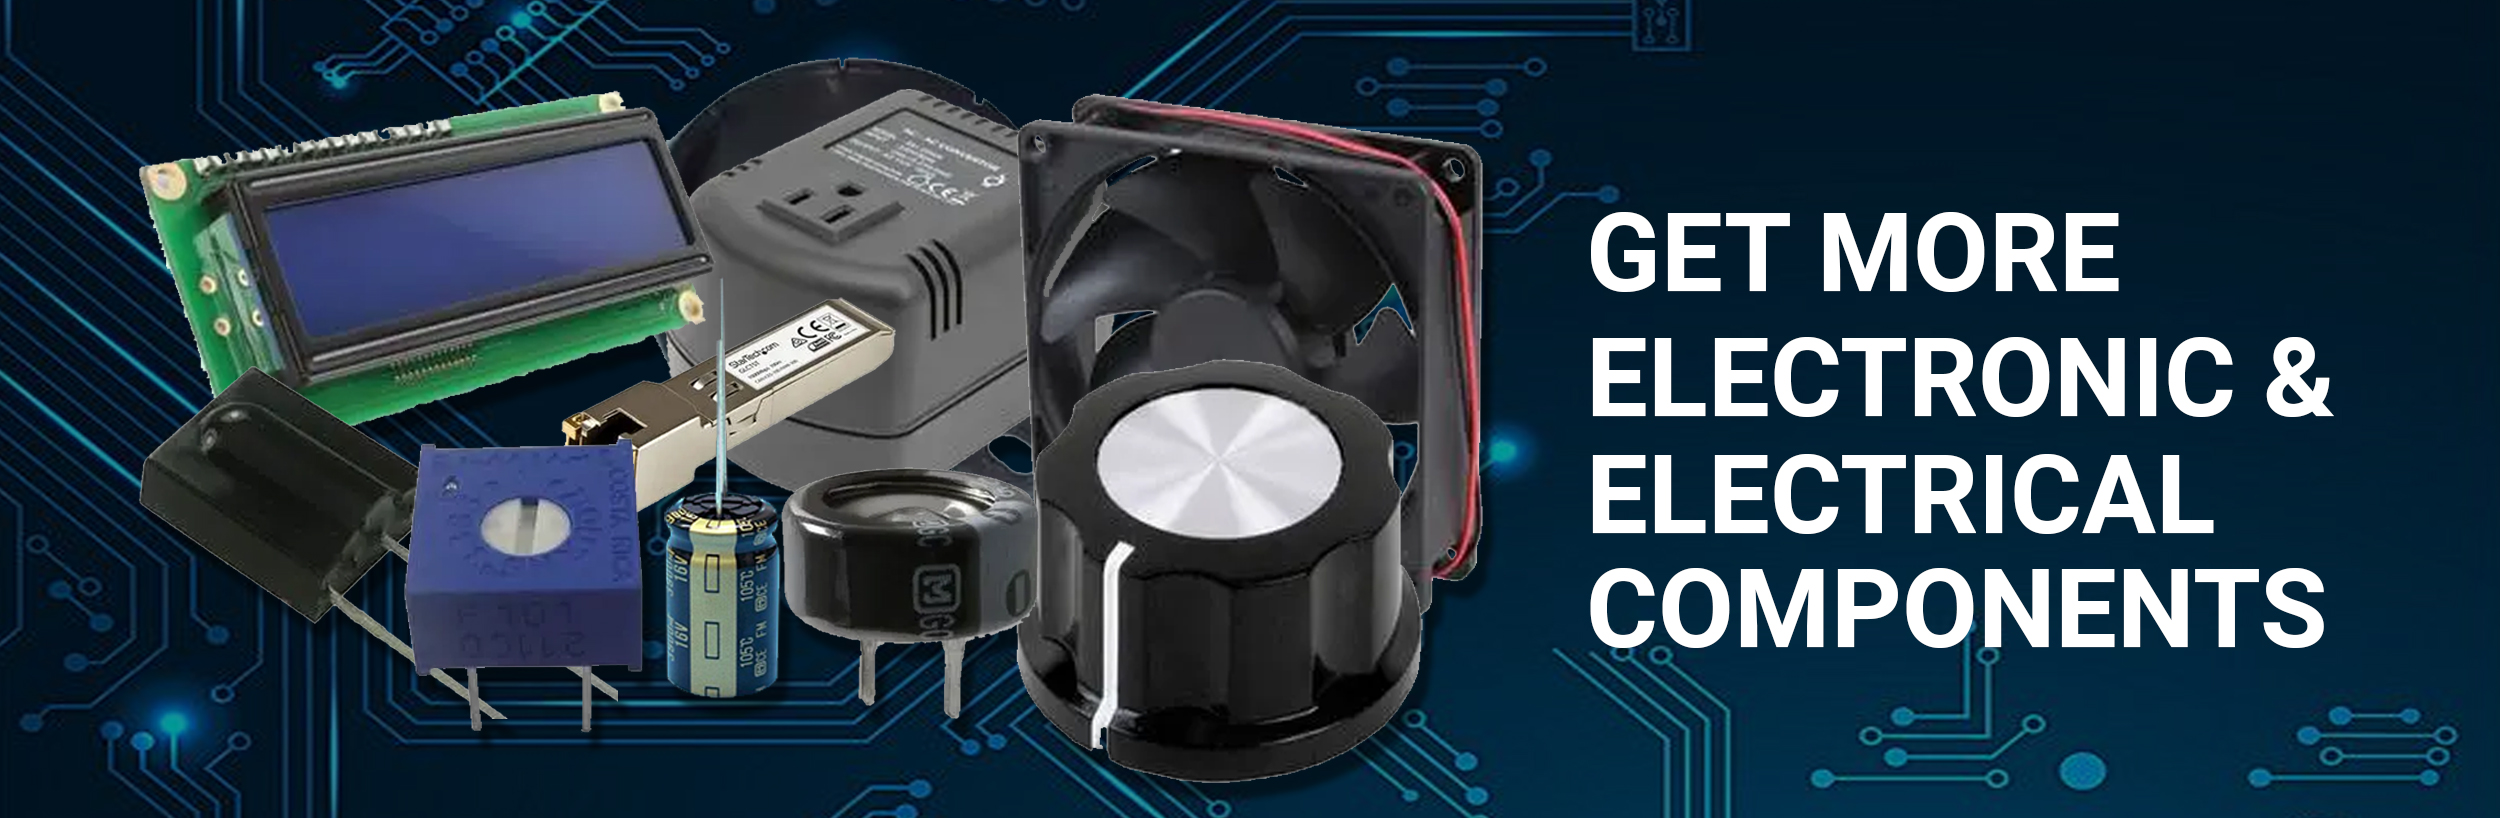 ELECTRONIC & ELECTRICAL COMPONENTS